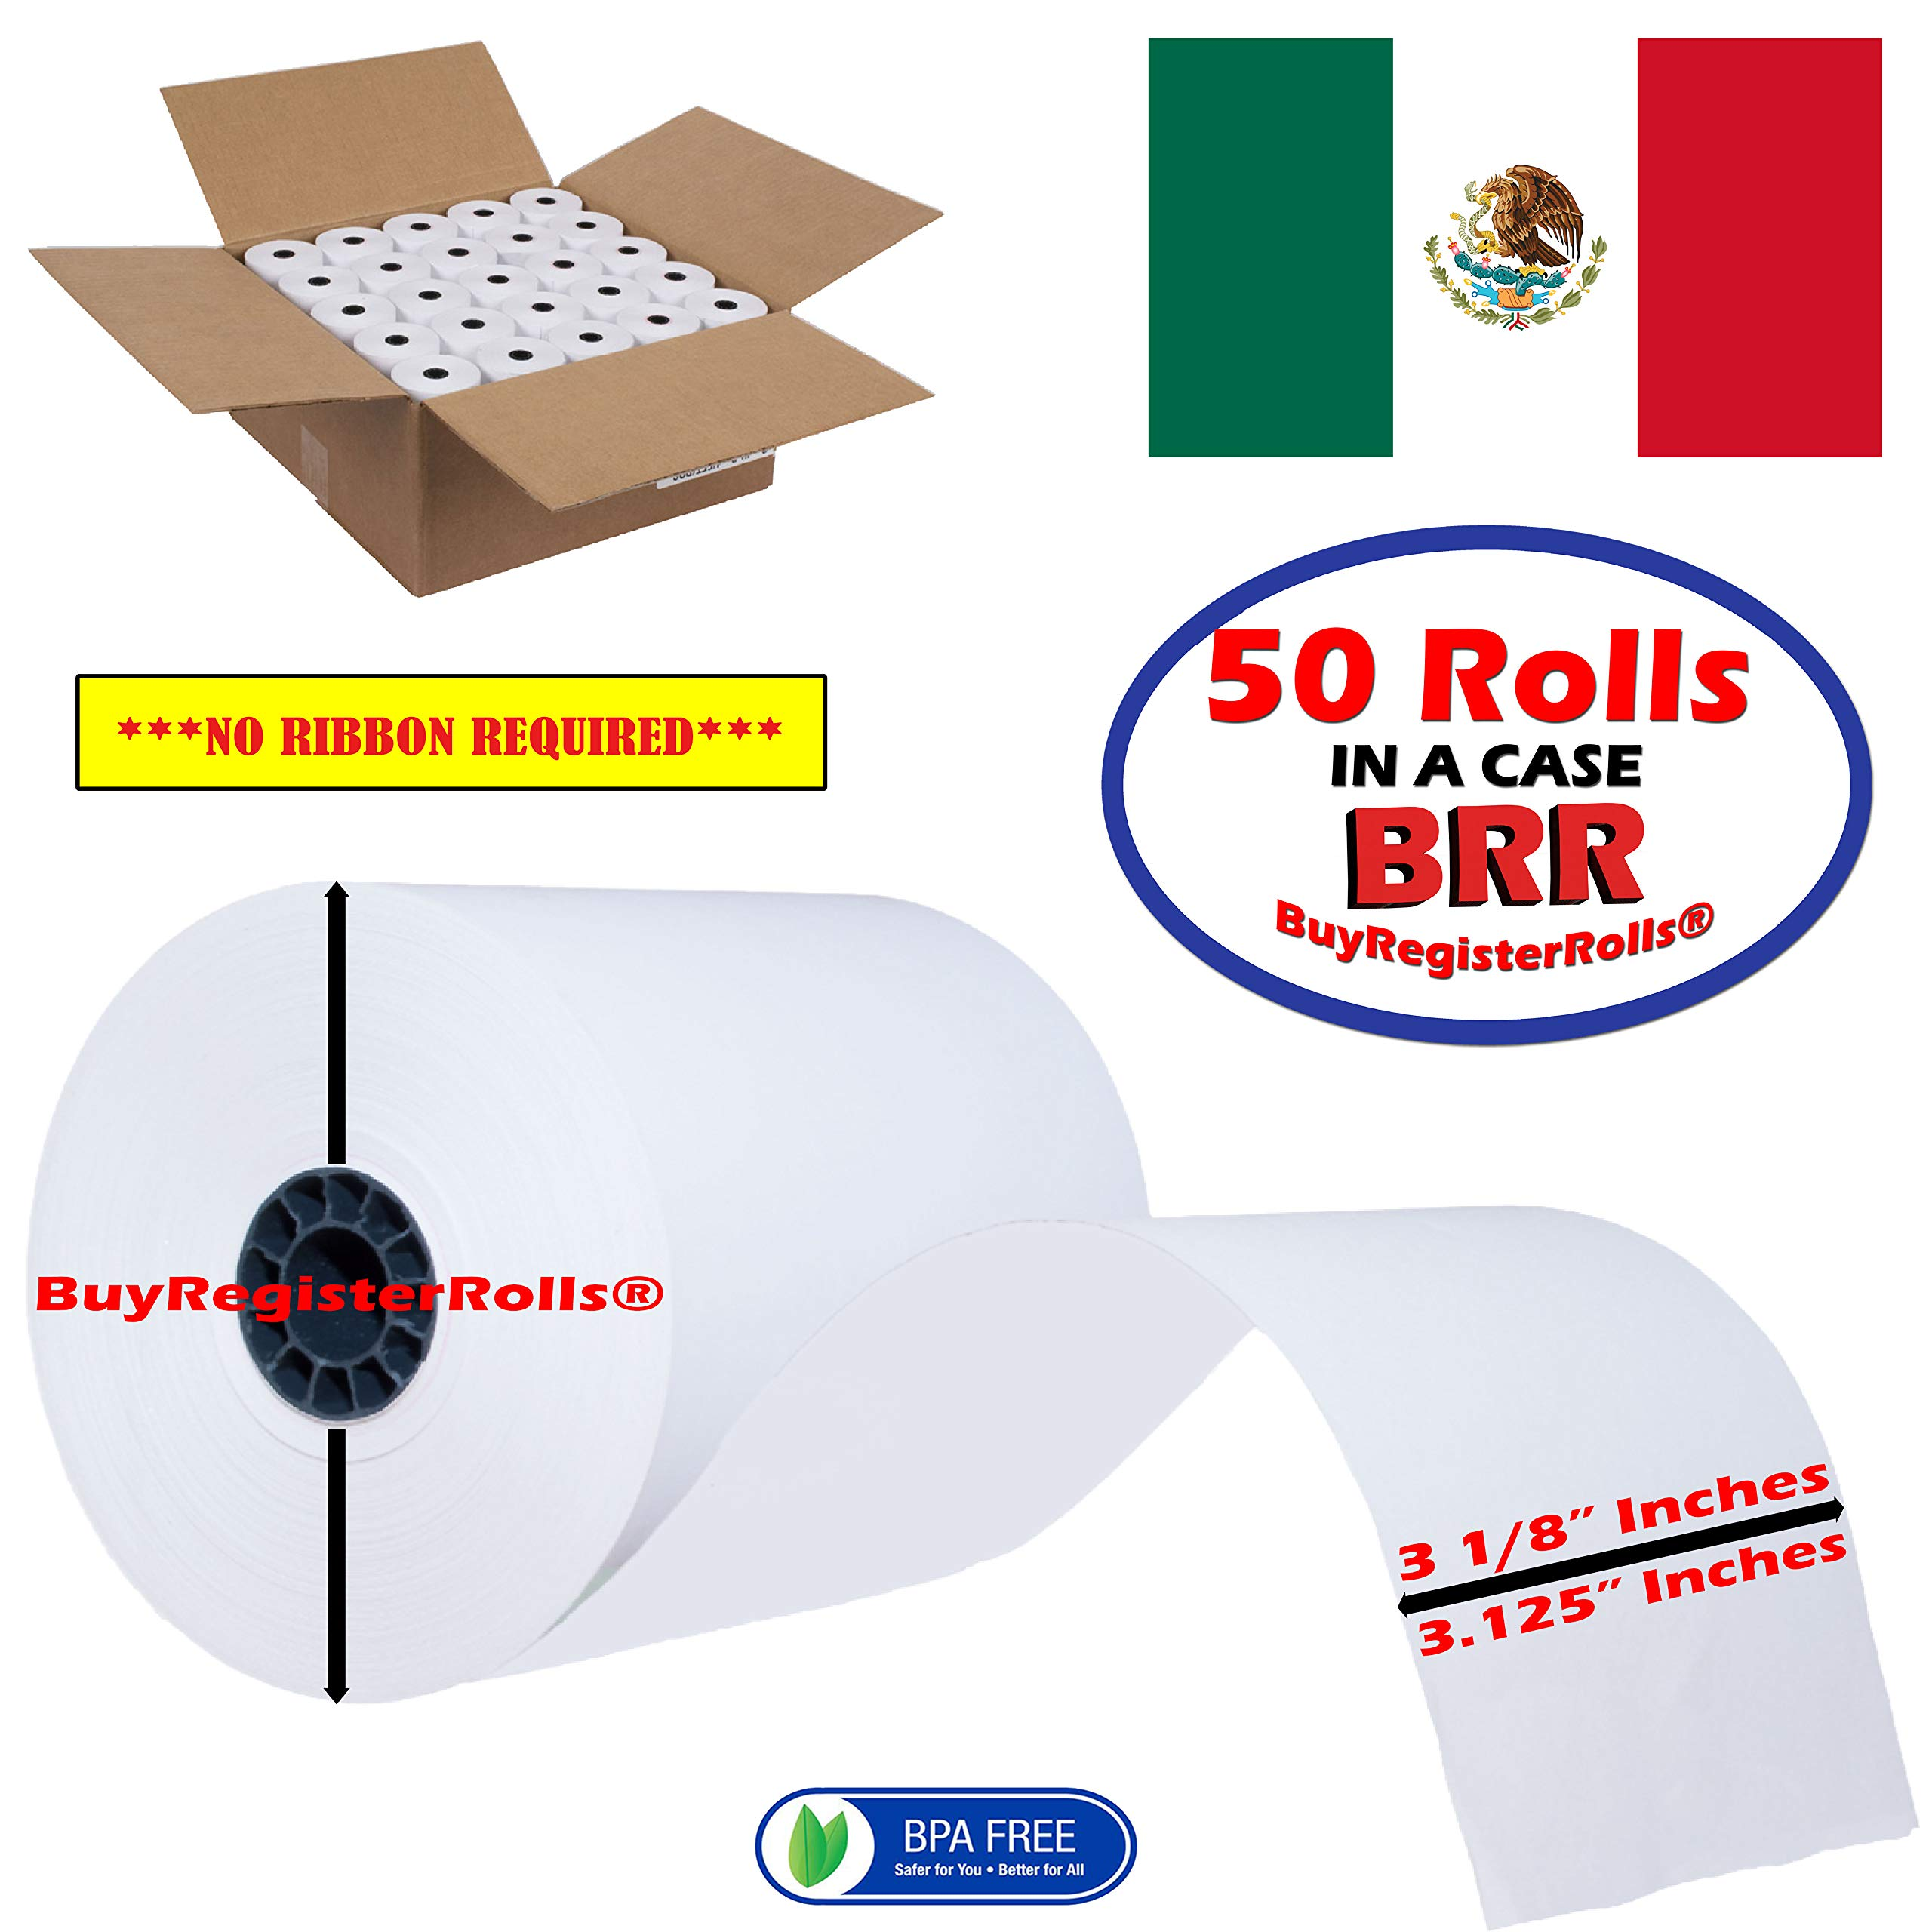 NCR 856348 Thermal Receipt Paper, 3-1/8'' x 230', White, 50 Rolls/Pk BPA Free Made in Mexico From BuyRegisterRolls by BuyRegisterRolls